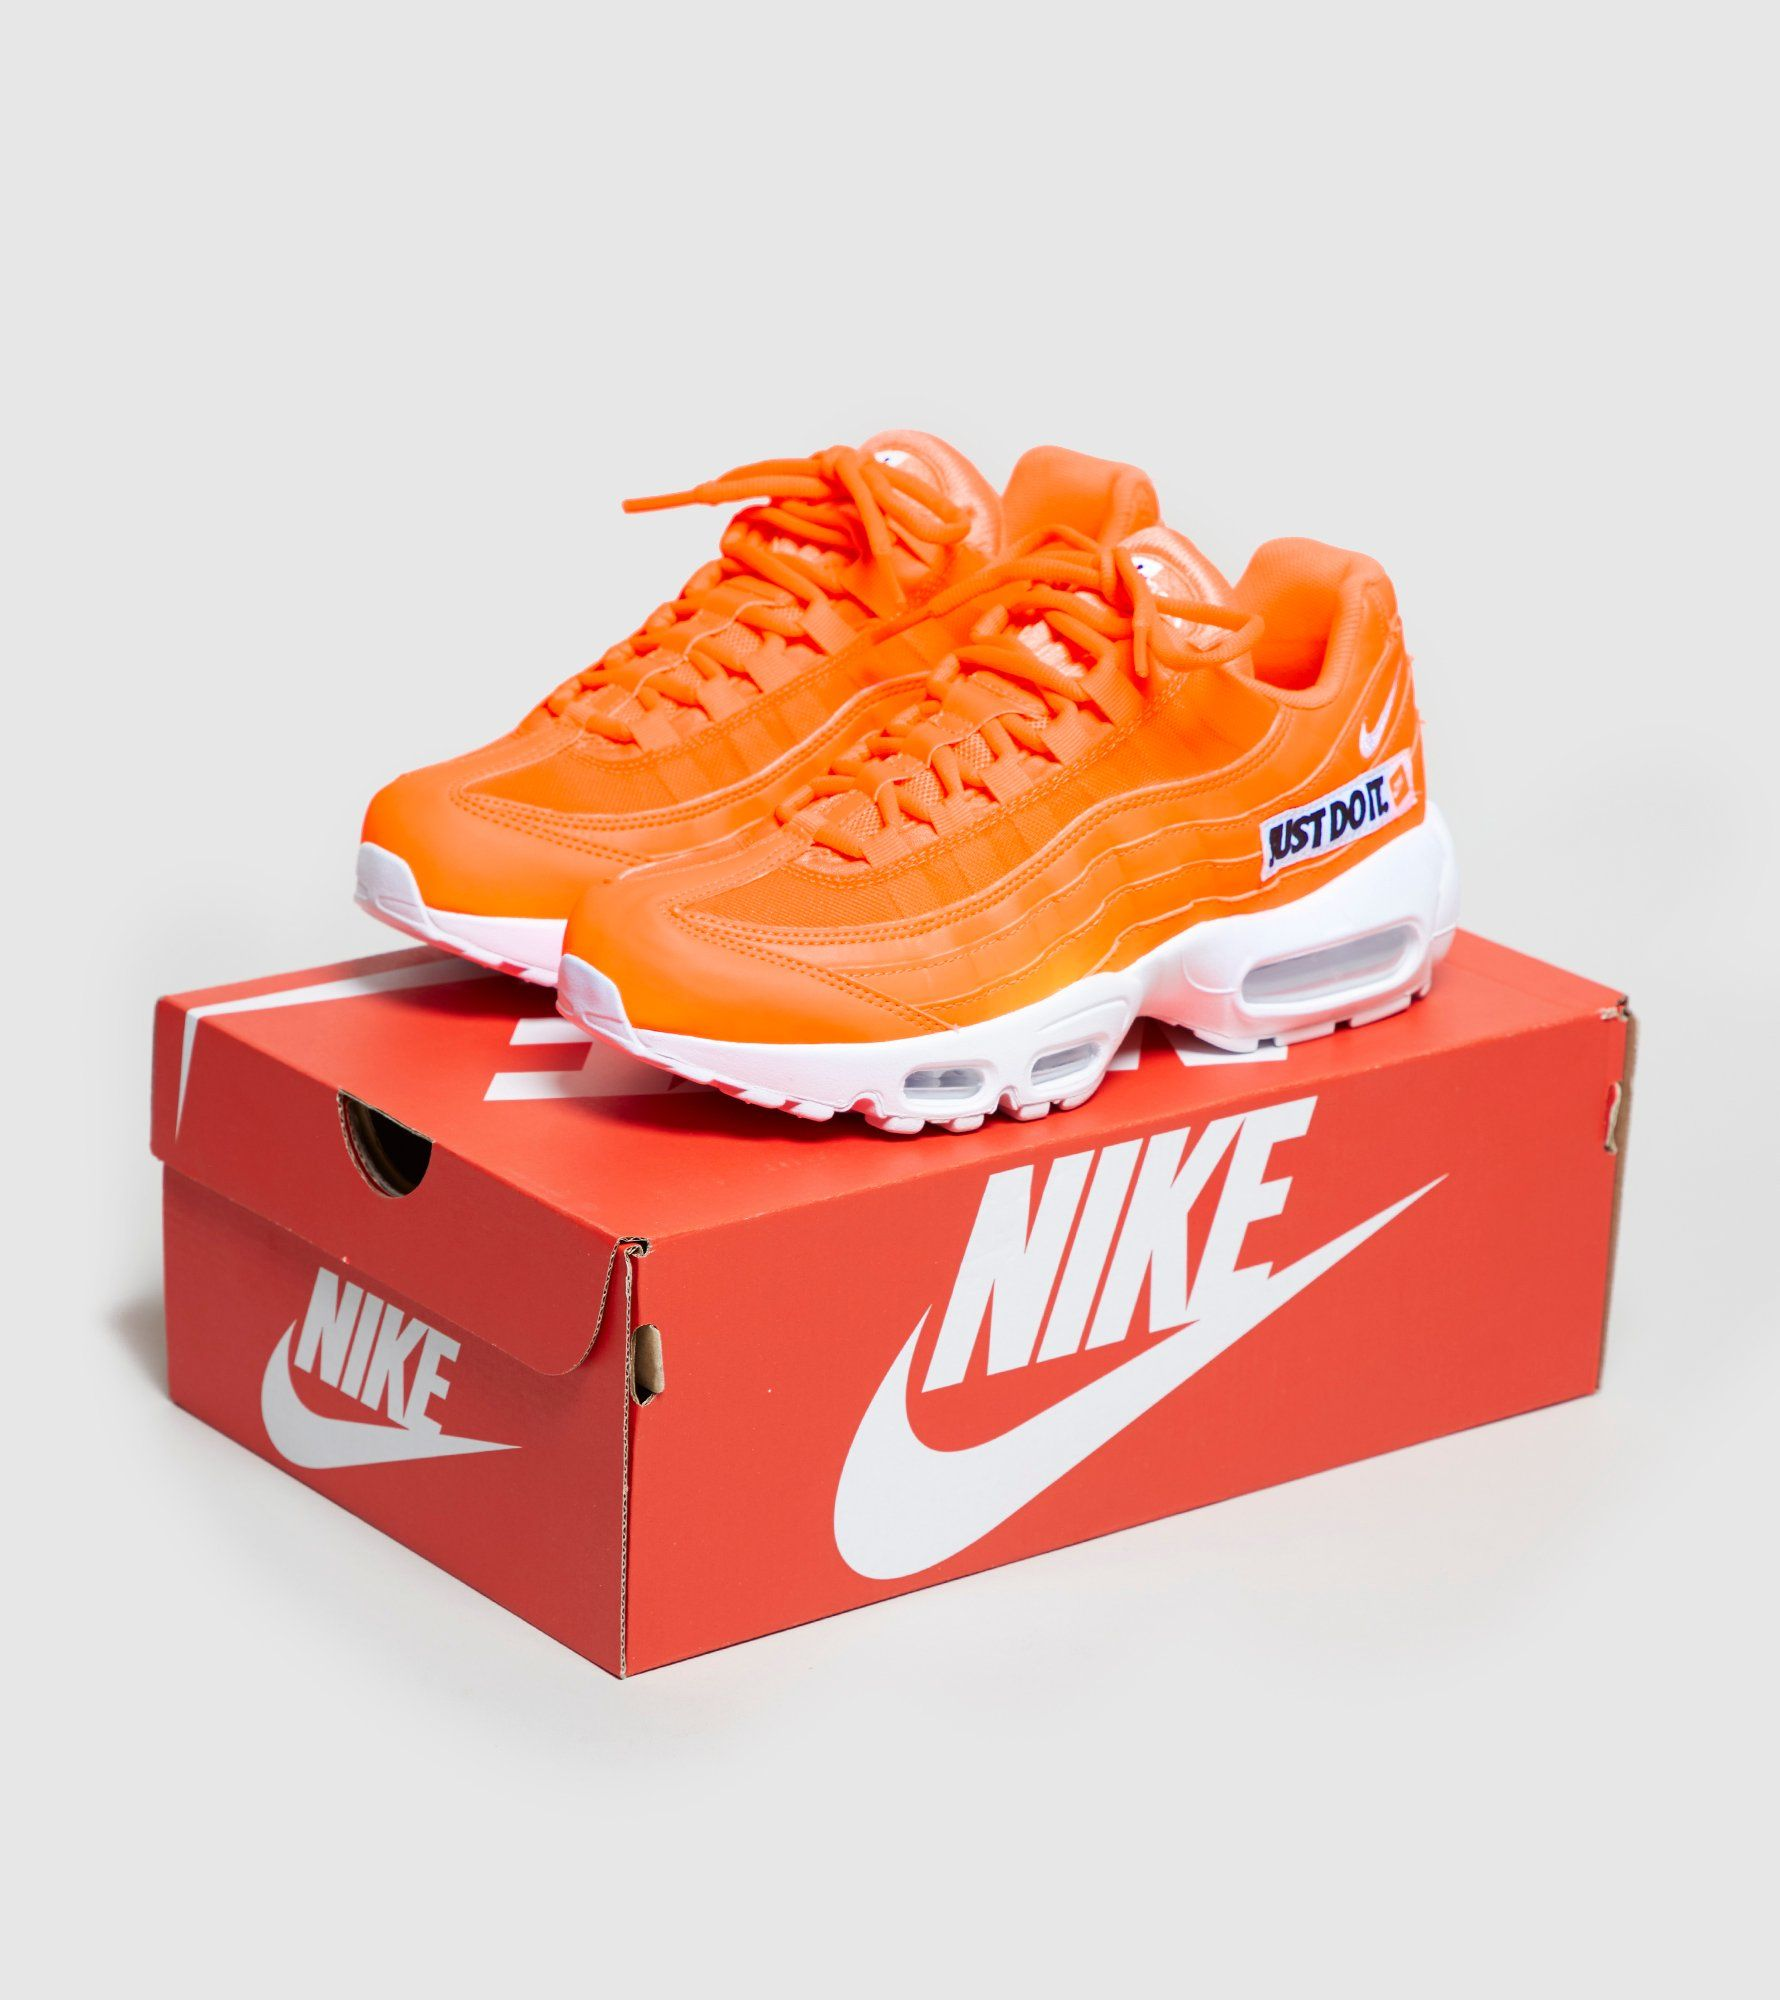 Nike Air Max 95 'Just Do It' Femme